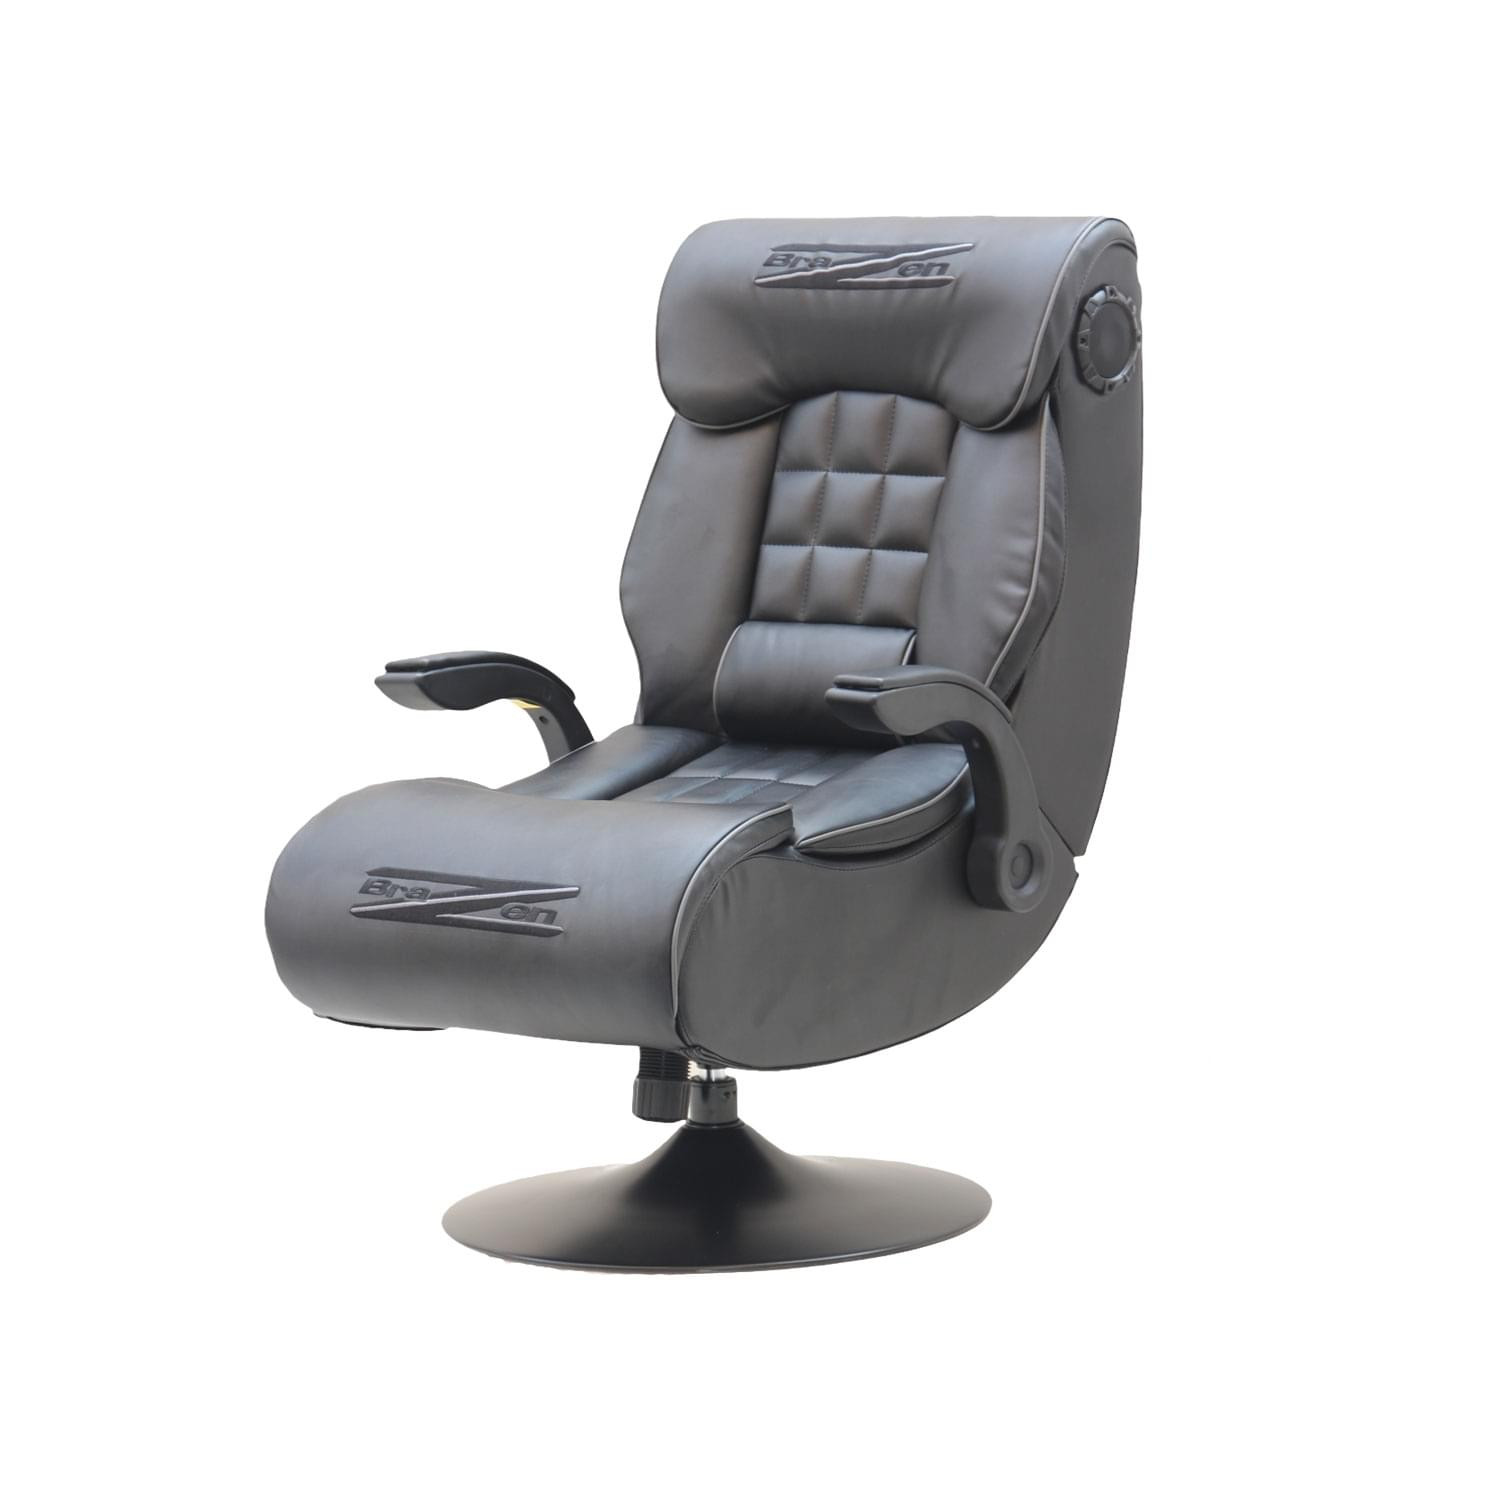 Best ideas about Bluetooth Gaming Chair . Save or Pin BraZen Demon 2 1 Bluetooth and Wireless DAC Gaming Chair Now.